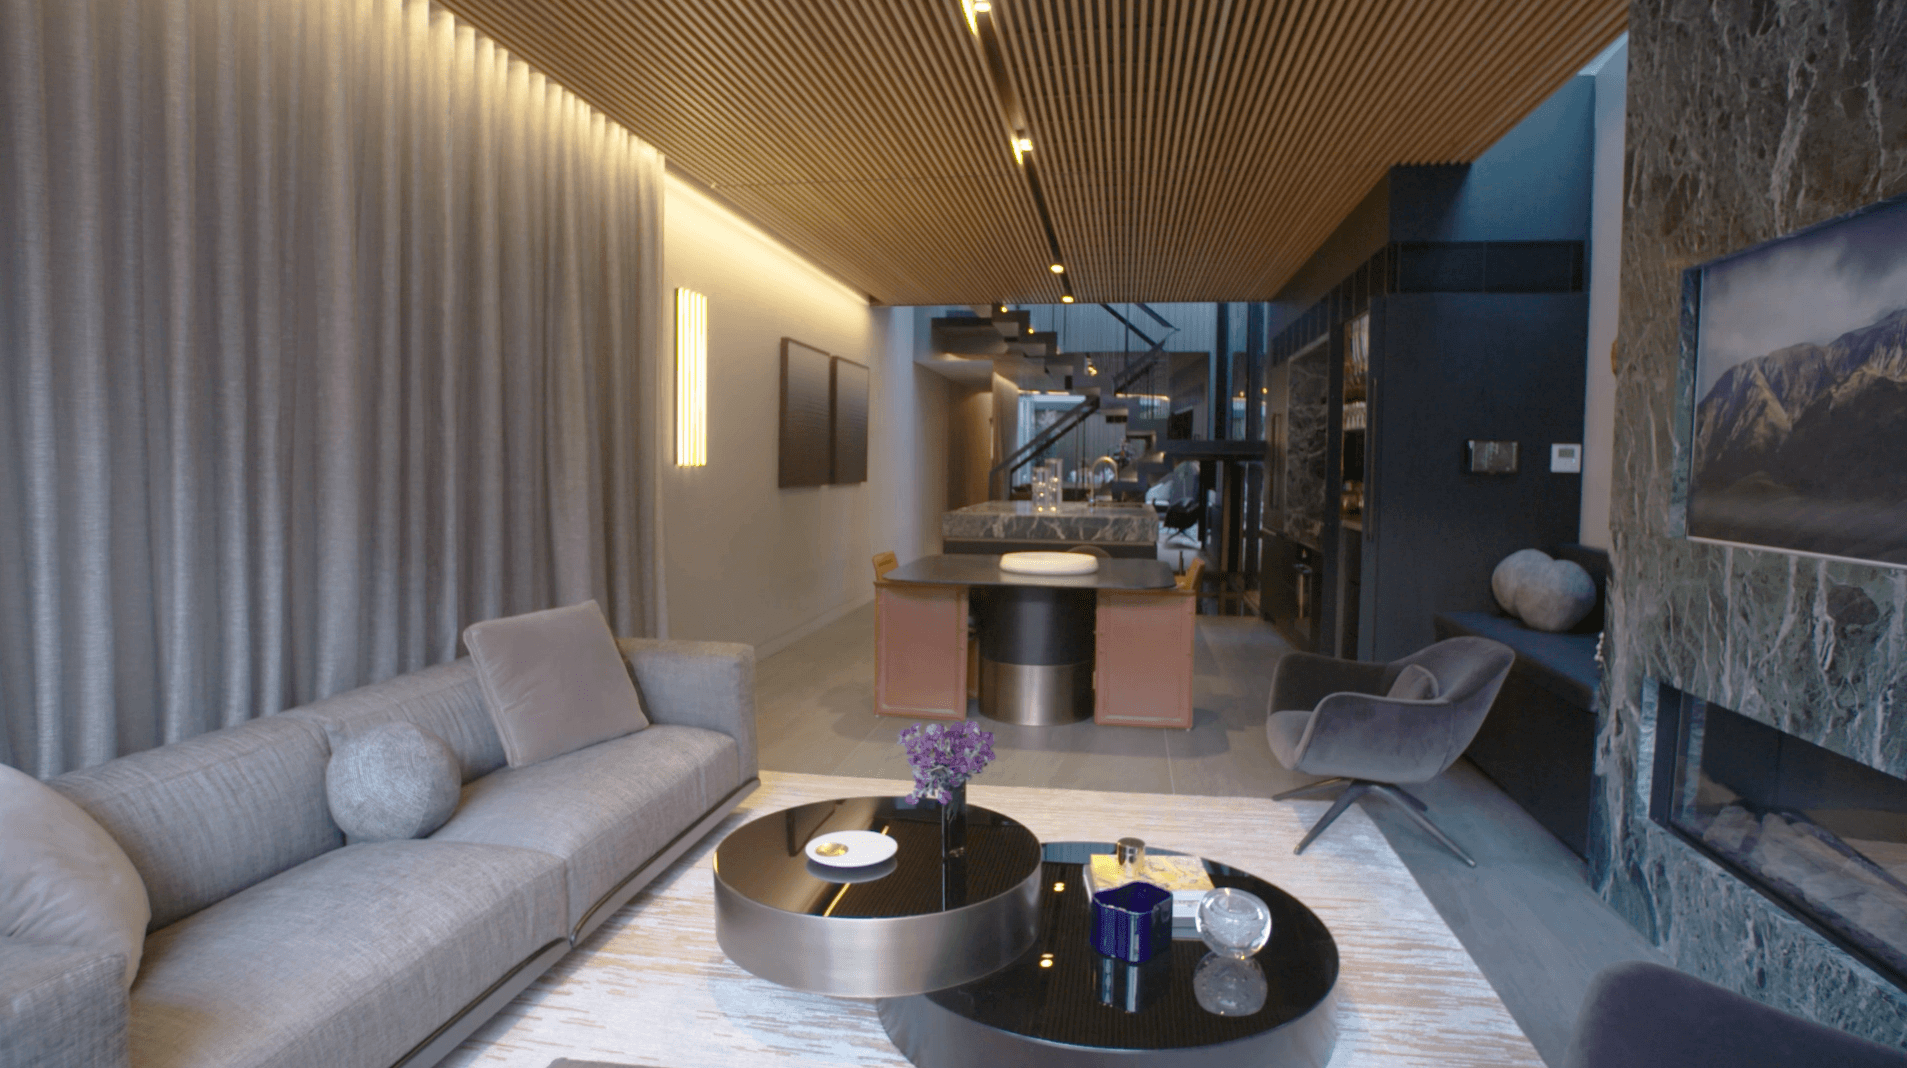 The Glass House by Nina Maya Interiors, located in the inner city Sydney suburb of Paddington, is an innovative residential project featuring ZETR product throughout.